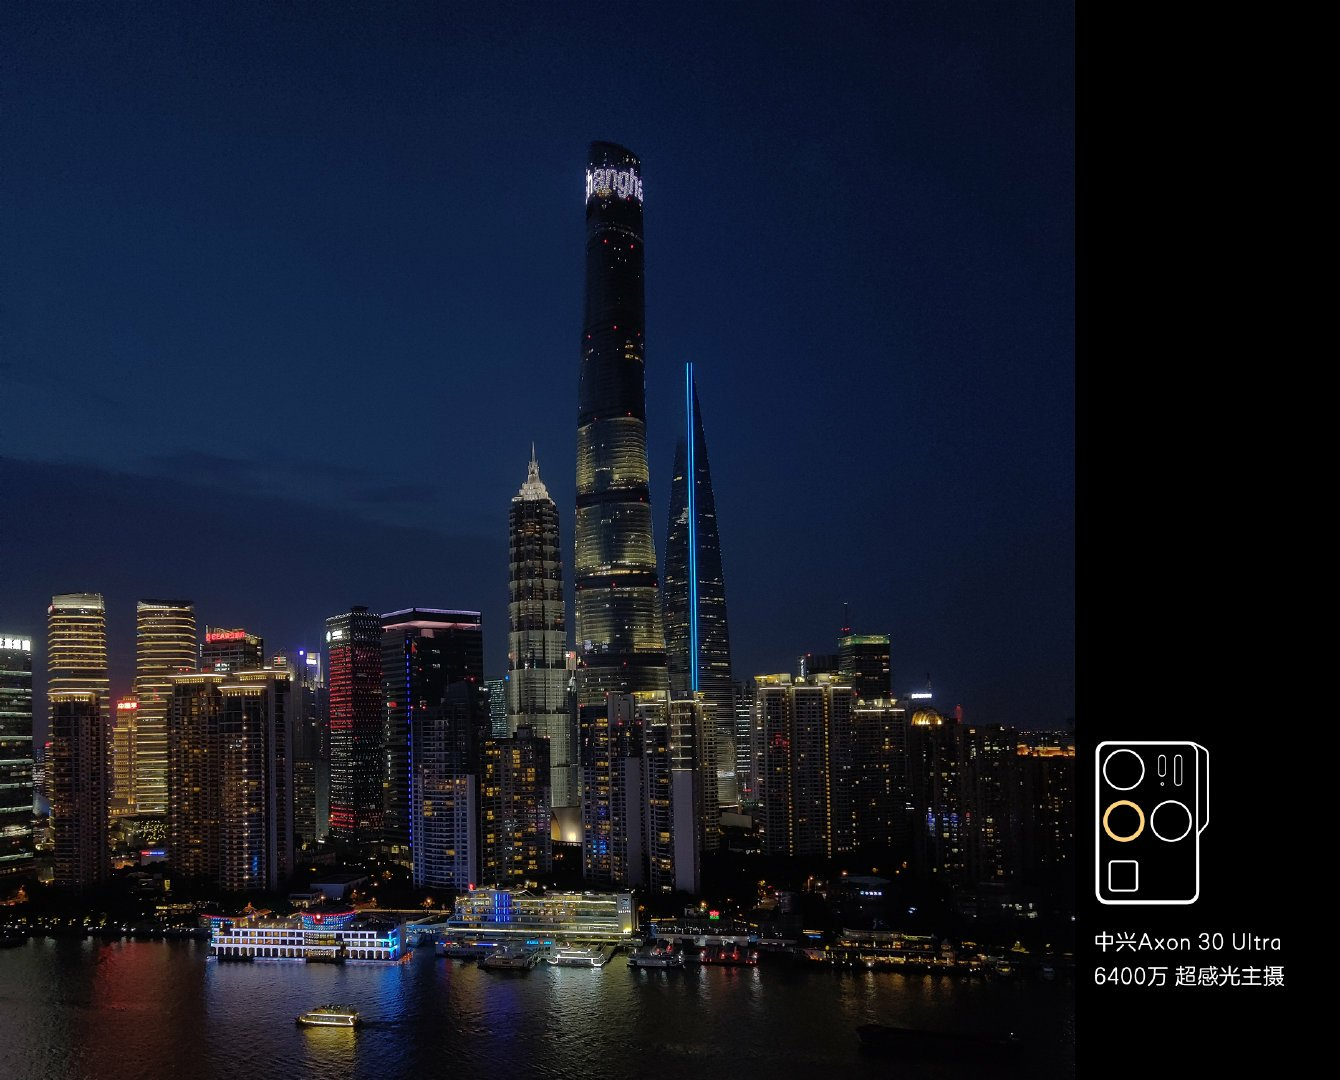 After reading our wide-angle proofs, let's show everyone our ZTE Axon30 Ultra night view. Is it equally good?